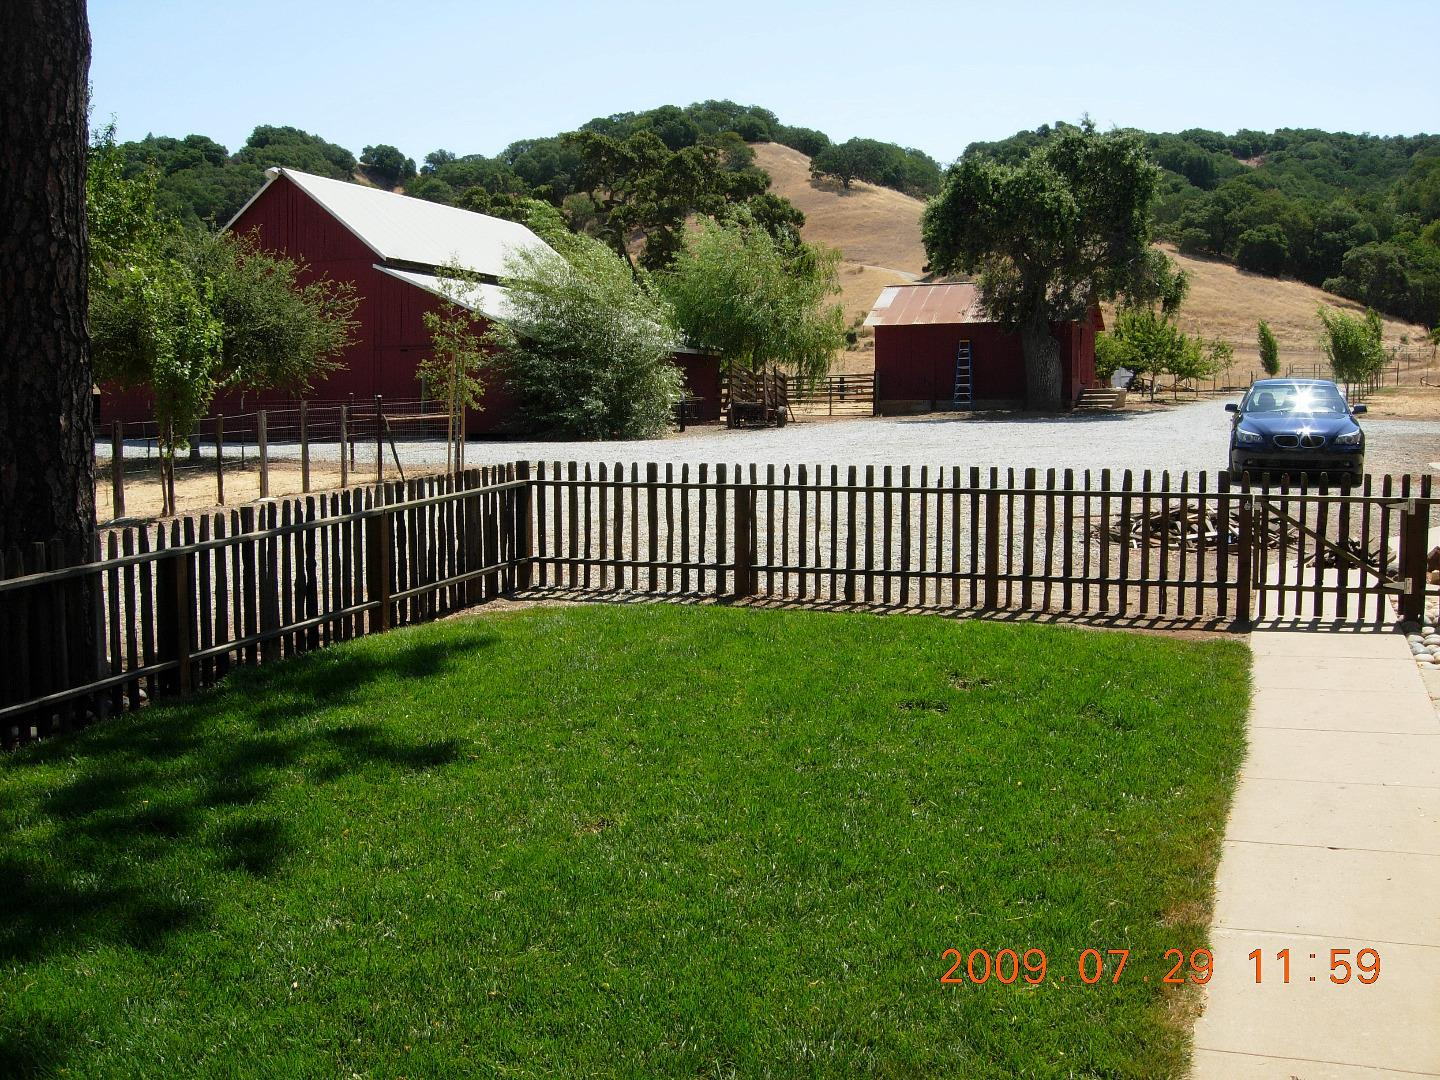 Single Family Home for Sale at 4520 Roop Road Gilroy, California 95020 United States